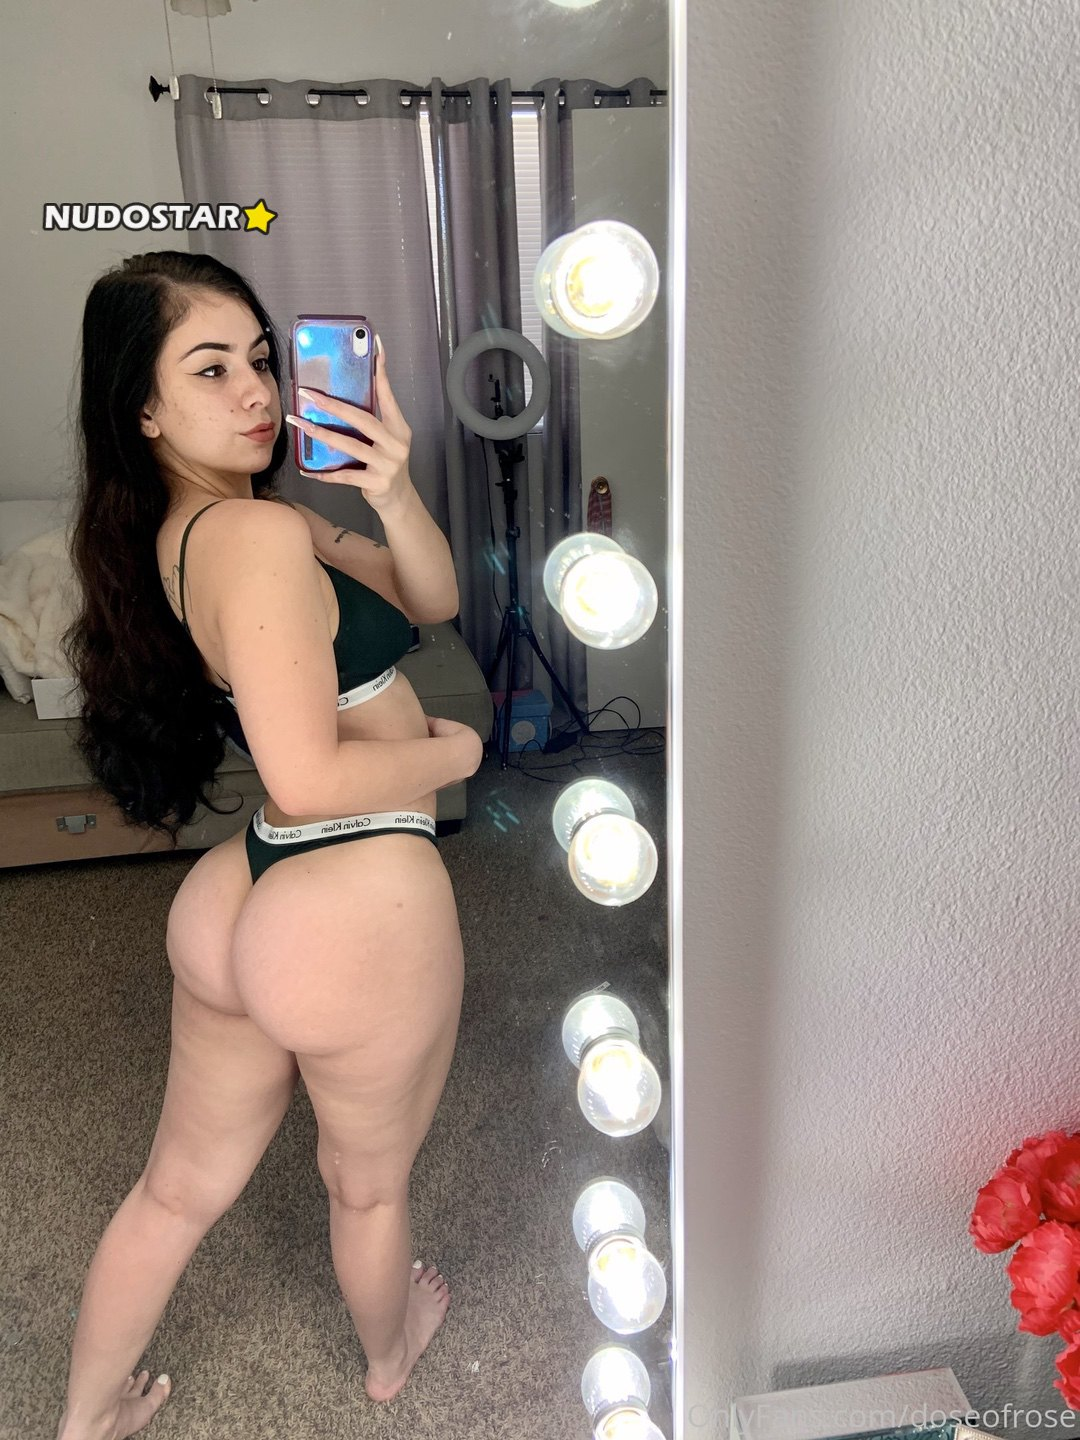 doseofrose Onlyfans Nudes Leaks (74 photos + 4 videos)